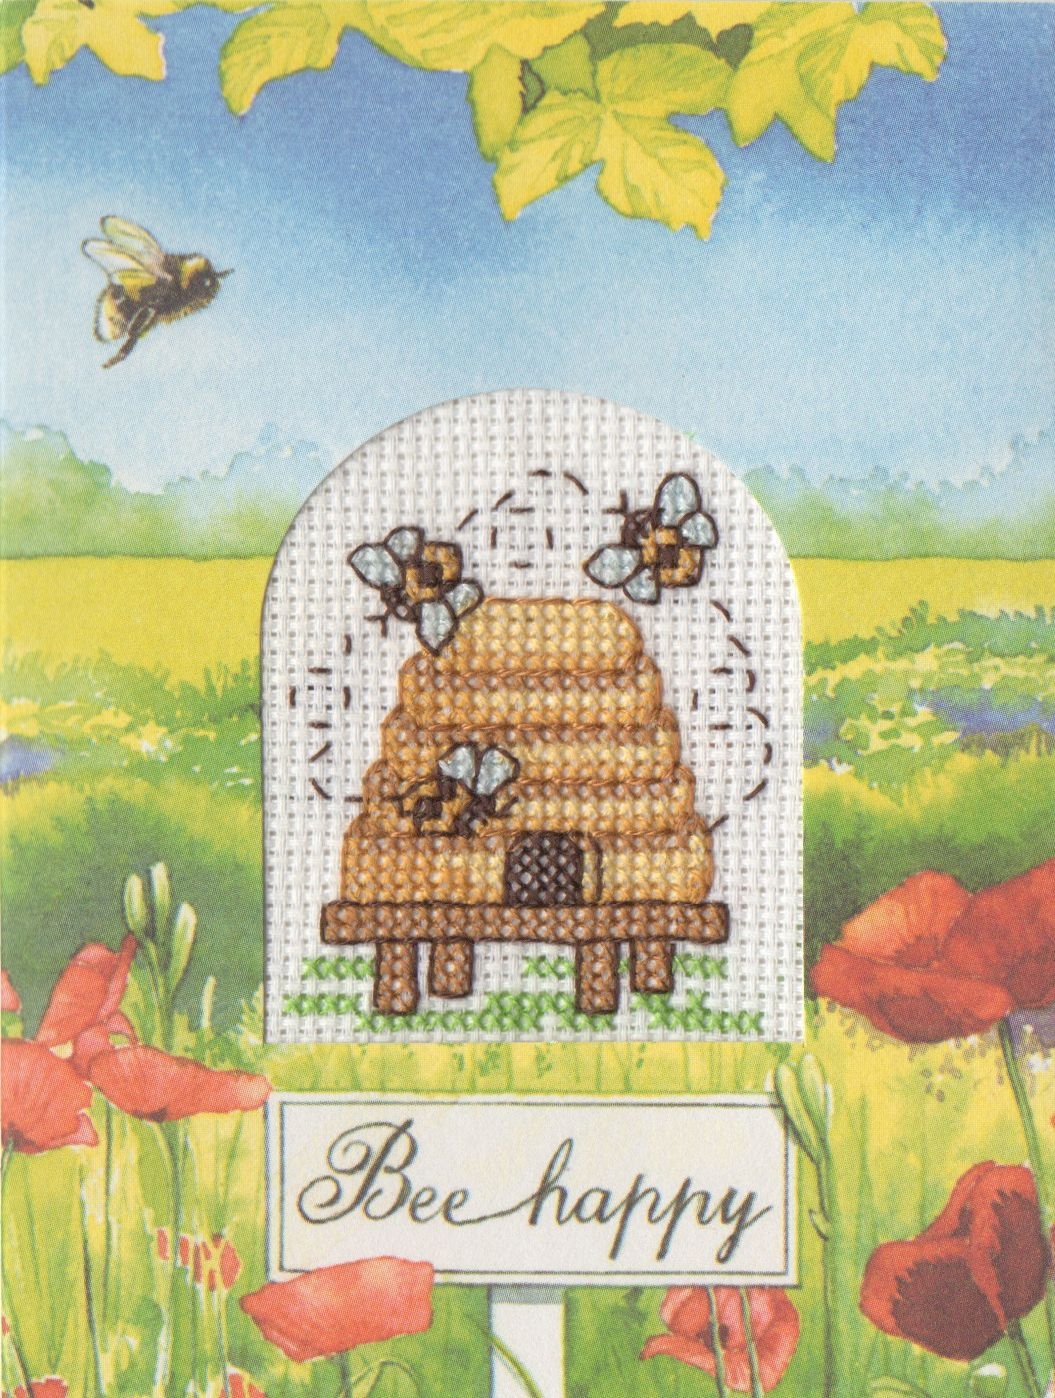 Bee Happy Cross-stiched Card